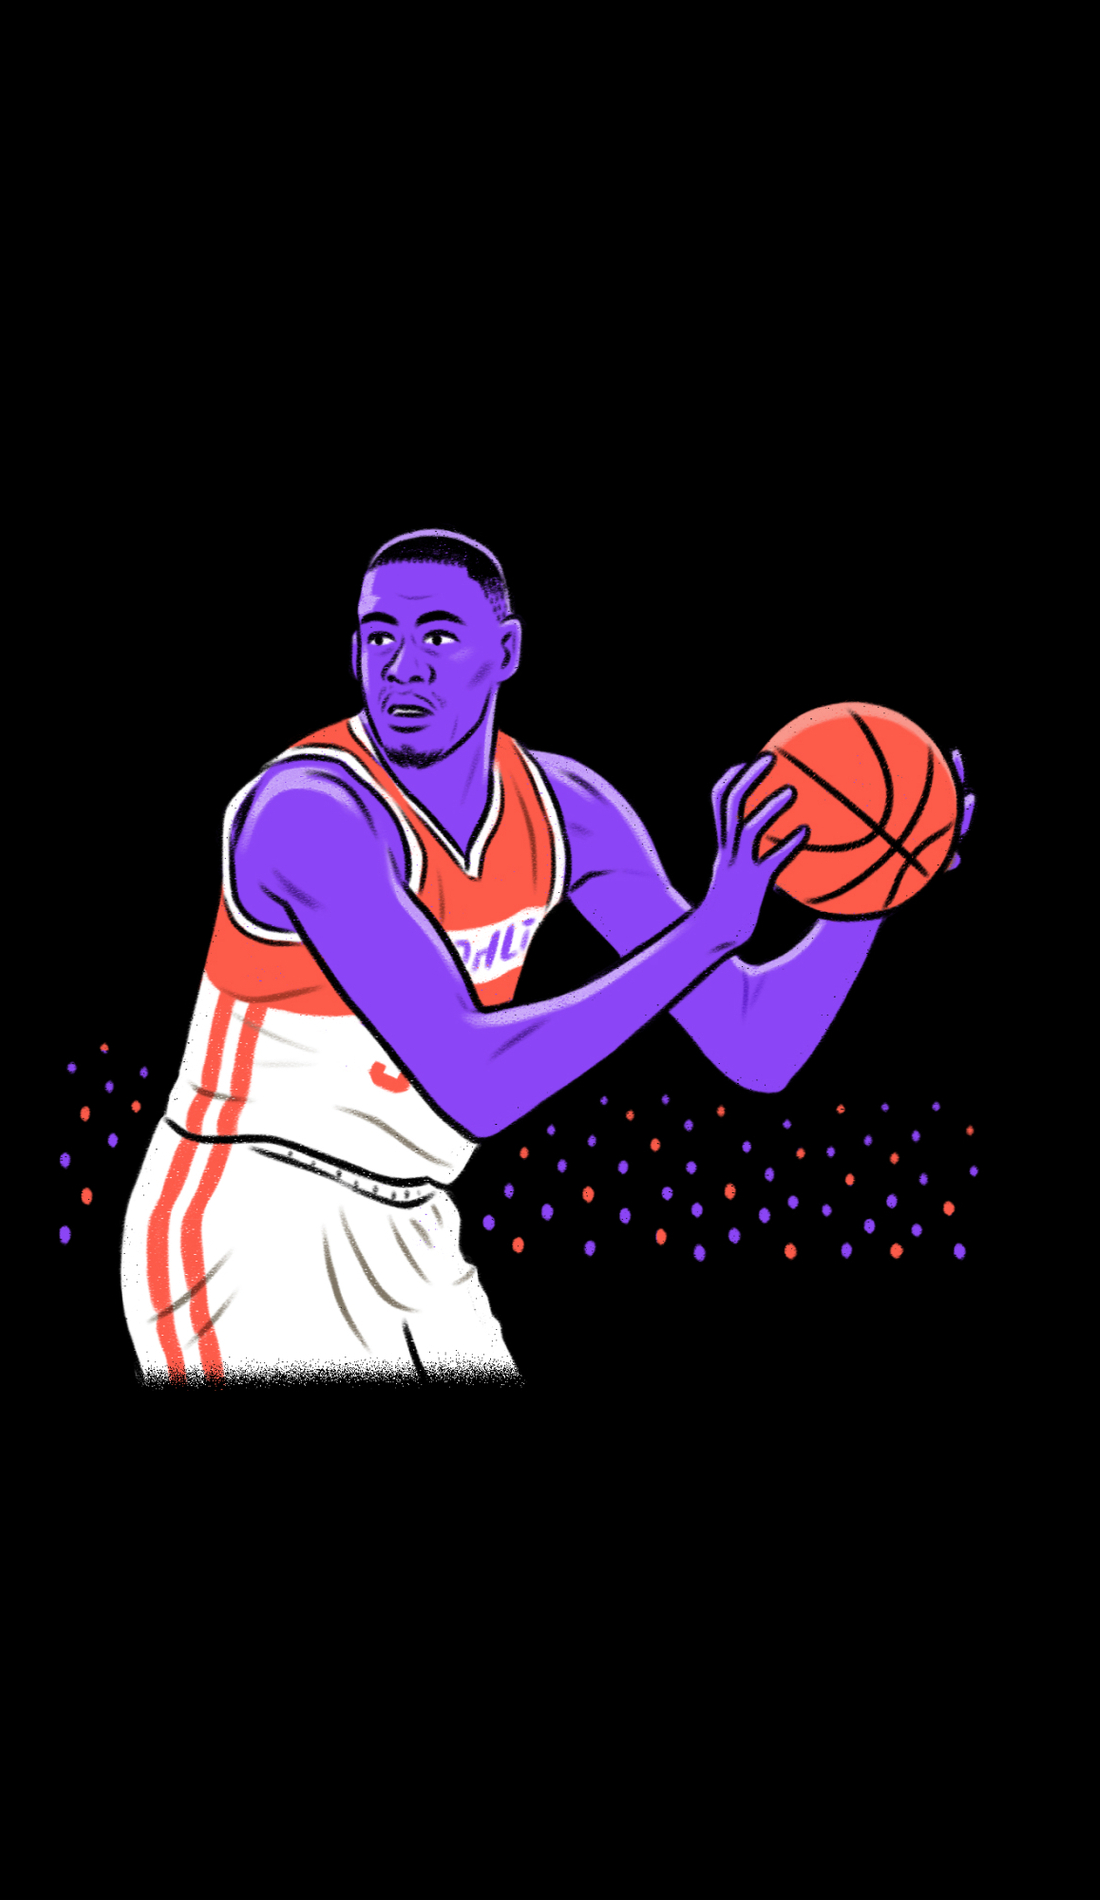 A UTEP Miners Basketball live event